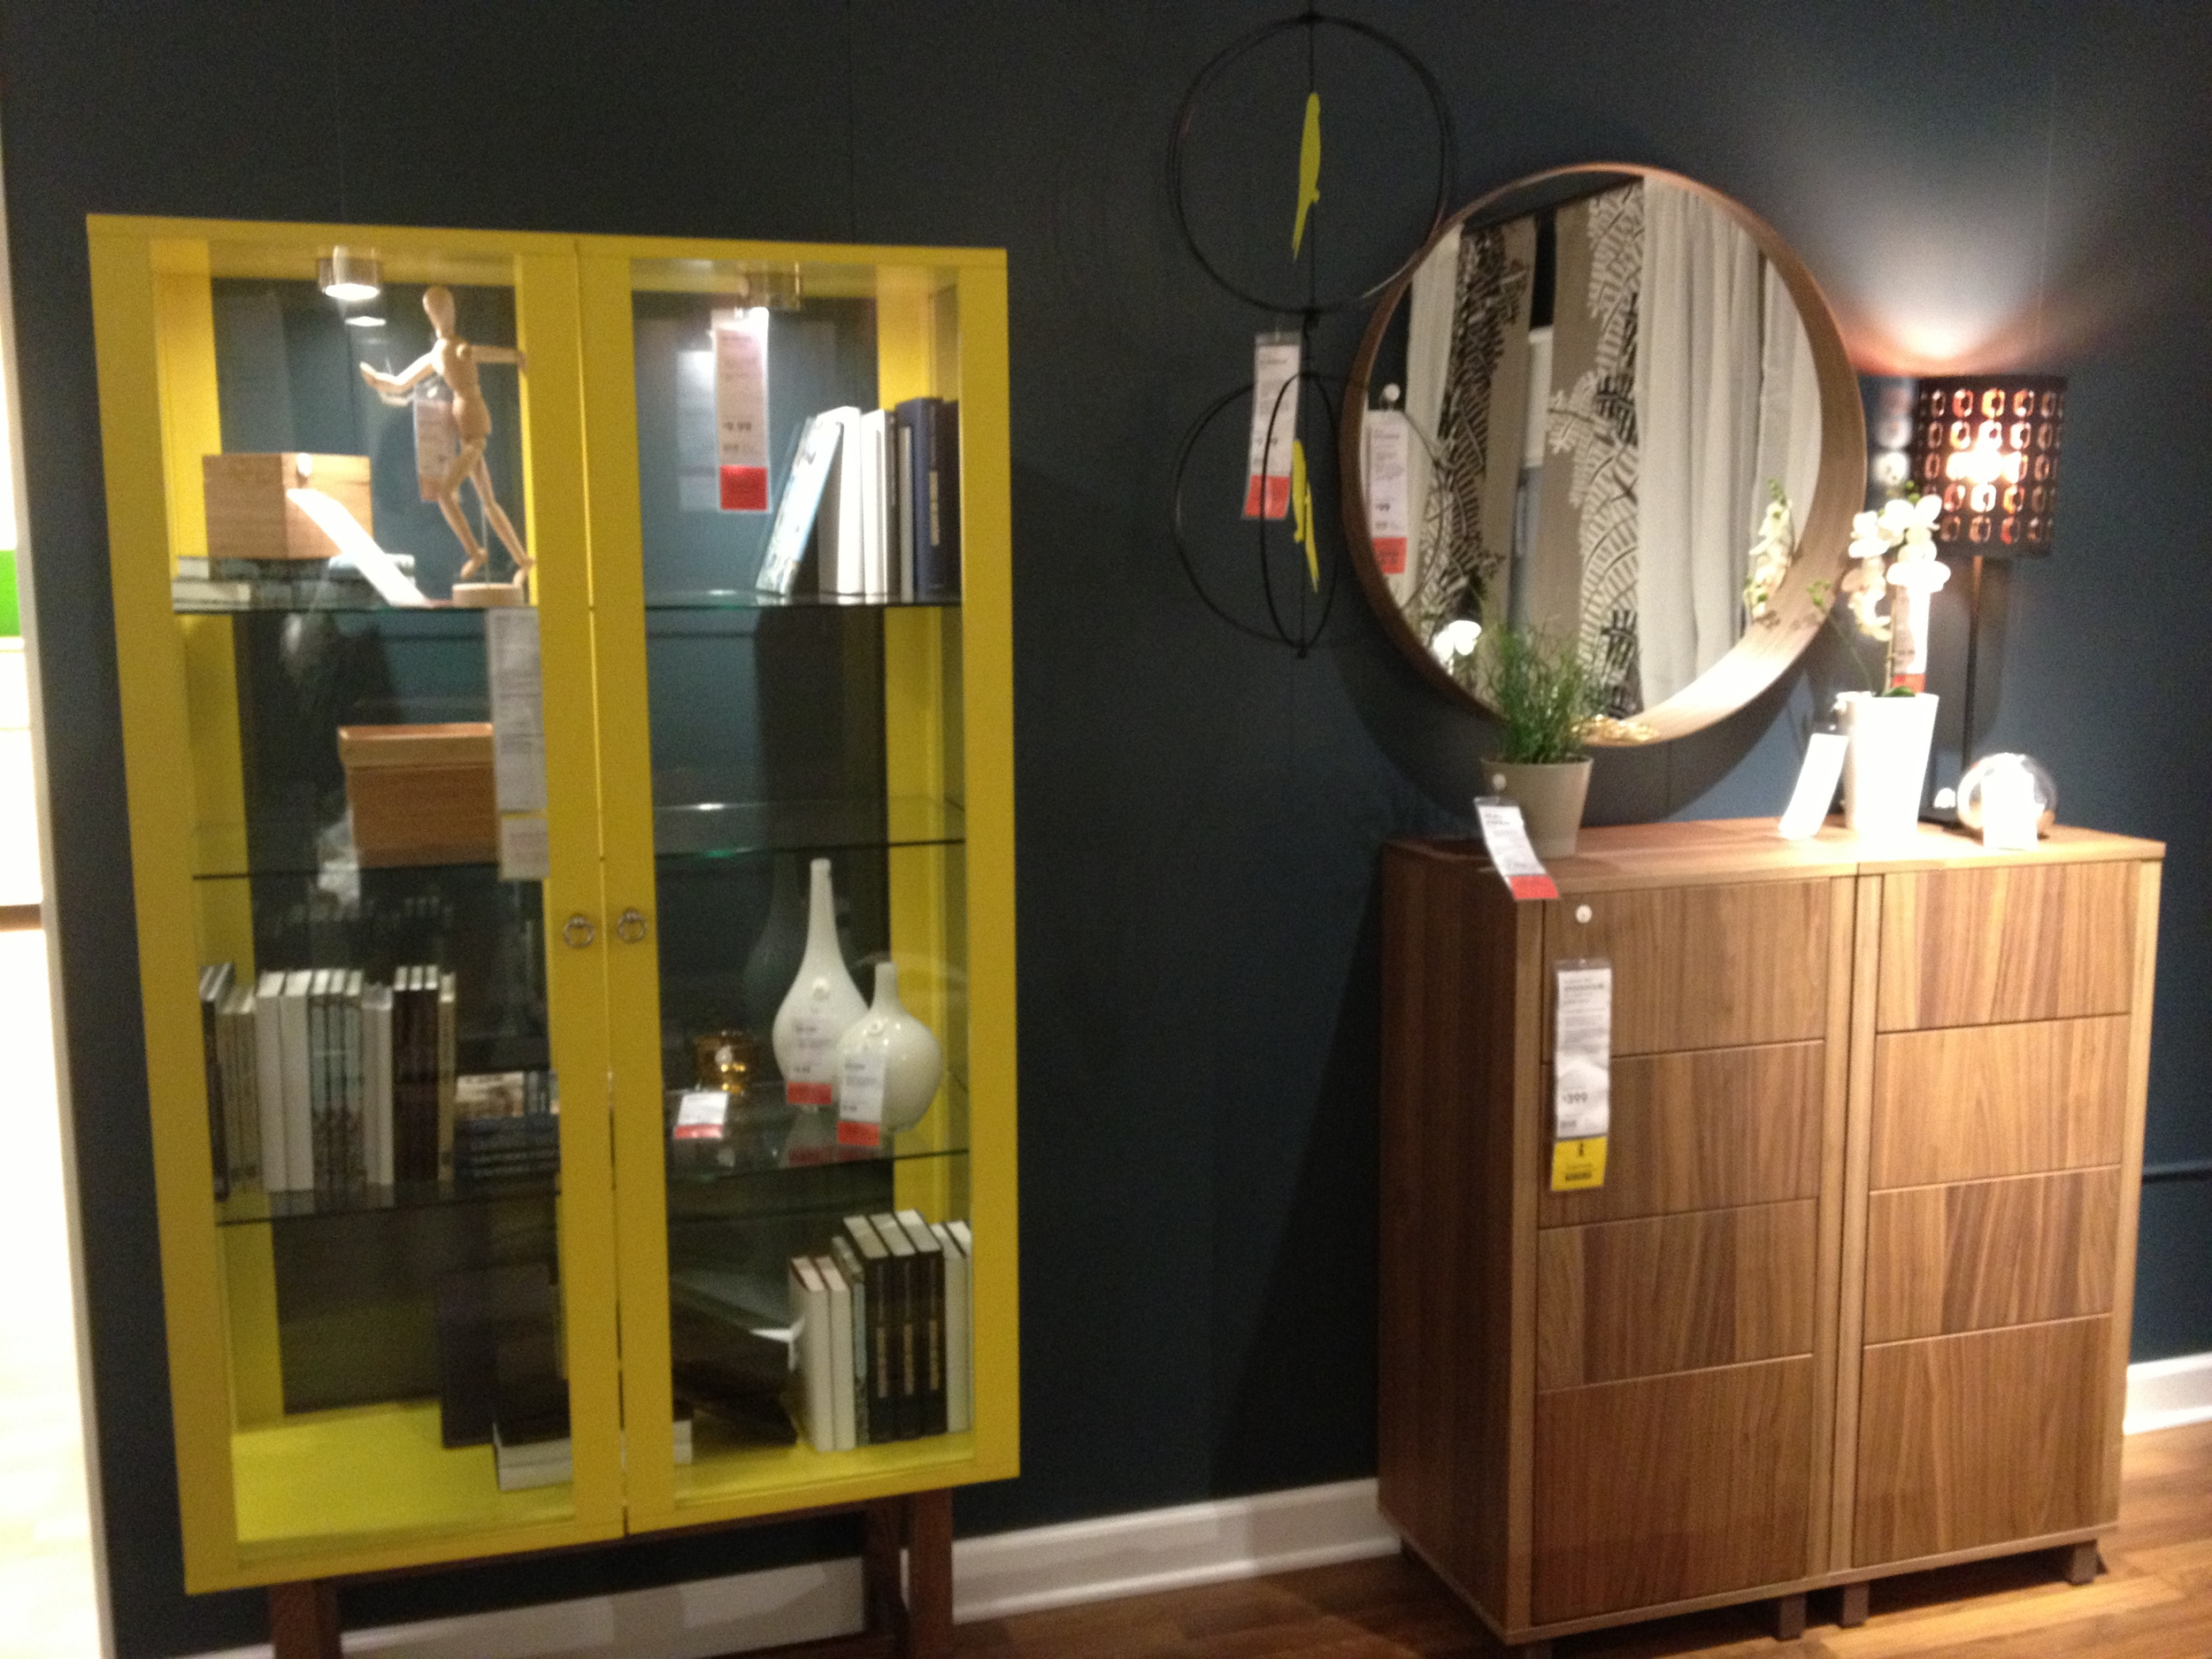 Love the pop of yellow and the round mirror.  Kansas City has IKEA!